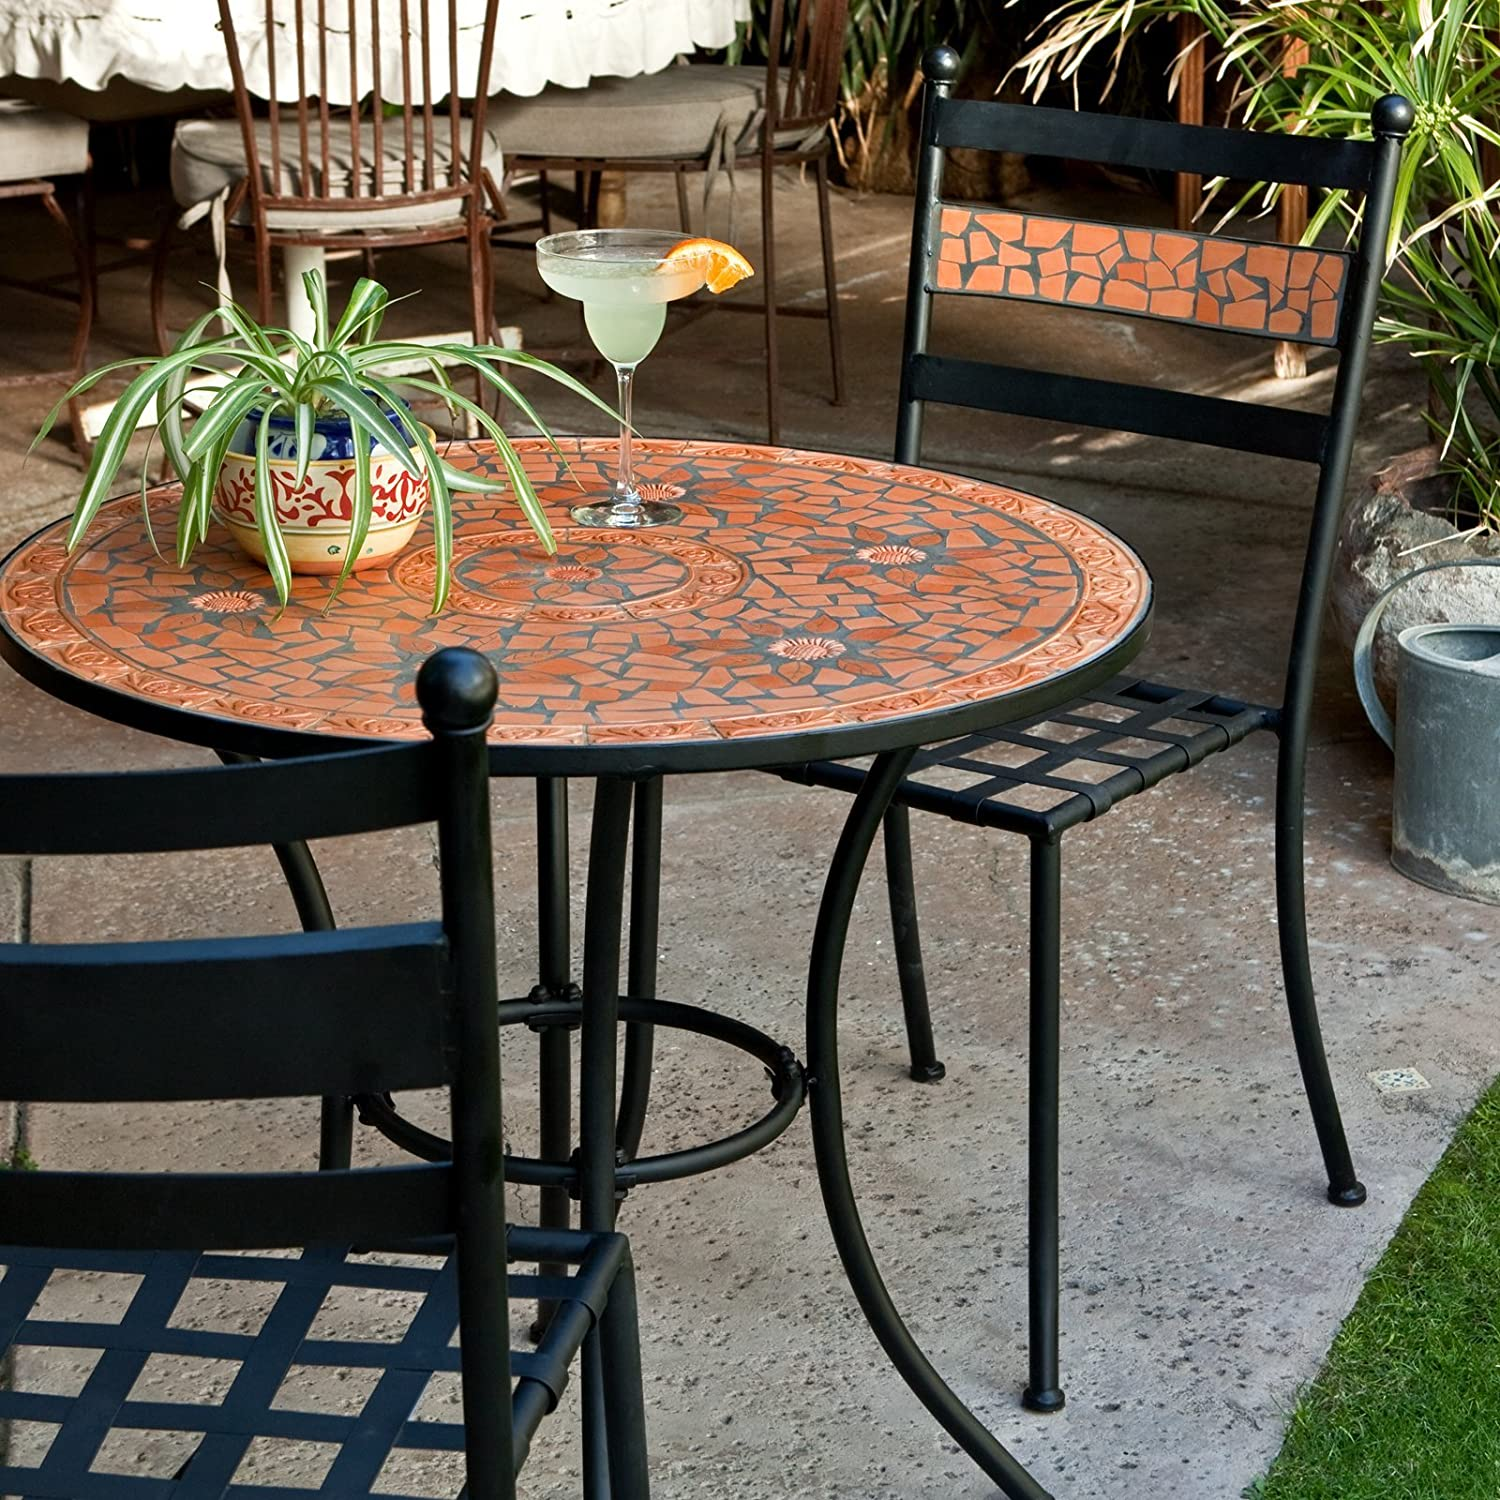 Amazon.com: Coral Coast Terra Cotta Mosaic Bistro Table: Patio, Lawn U0026  Garden